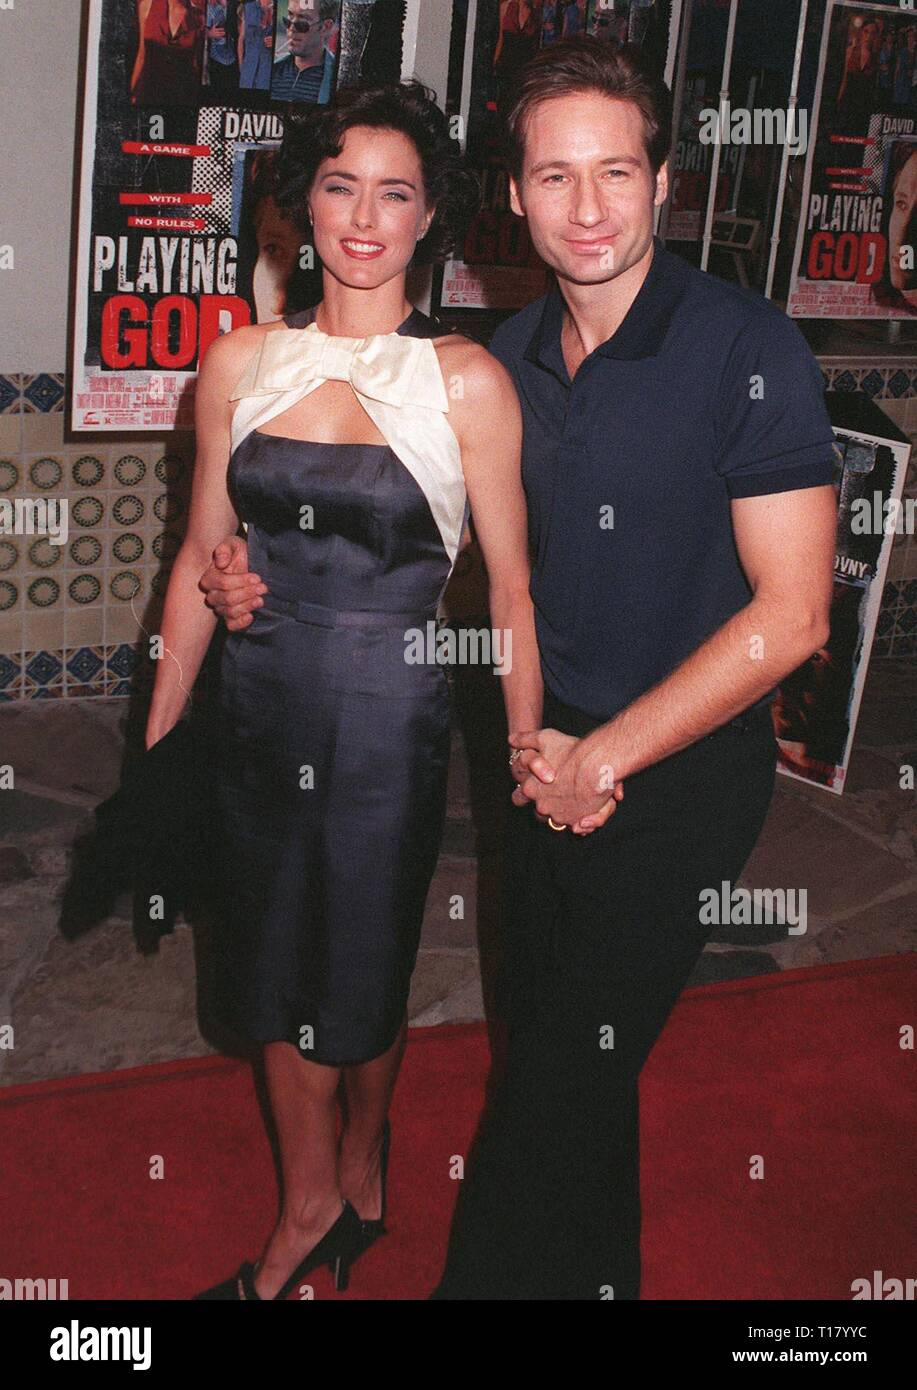 LOS ANGELES, CA. October 16, 1997:  'X-Files' star David Duchovny & wife Tea Leoni at premiere of his new movie 'Playing God.' - Stock Image